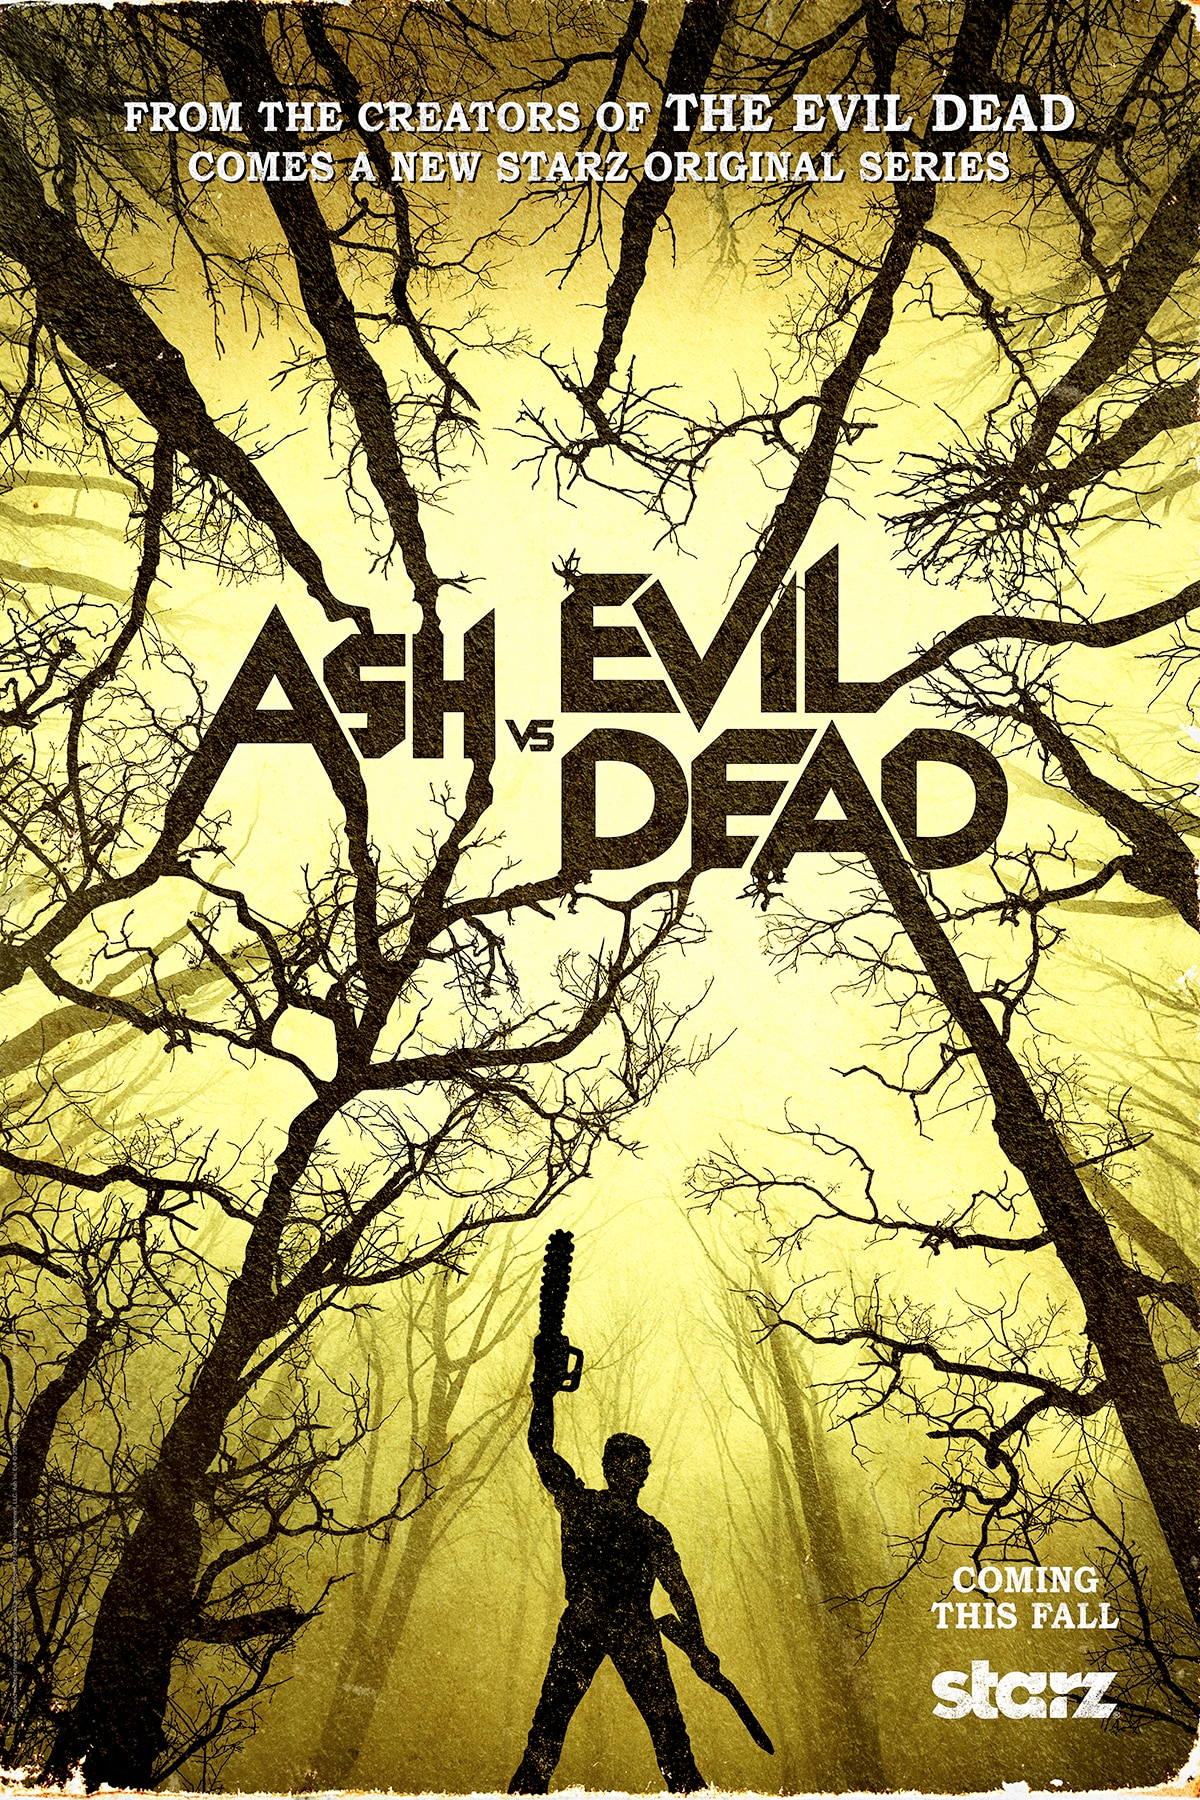 AVED Teaser 1200x1800 Final.jpg?zoom=1 - #SDCC15: Ash vs. Evil Dead Gets a Halloween Premiere; We Get an Awesome New Trailer!